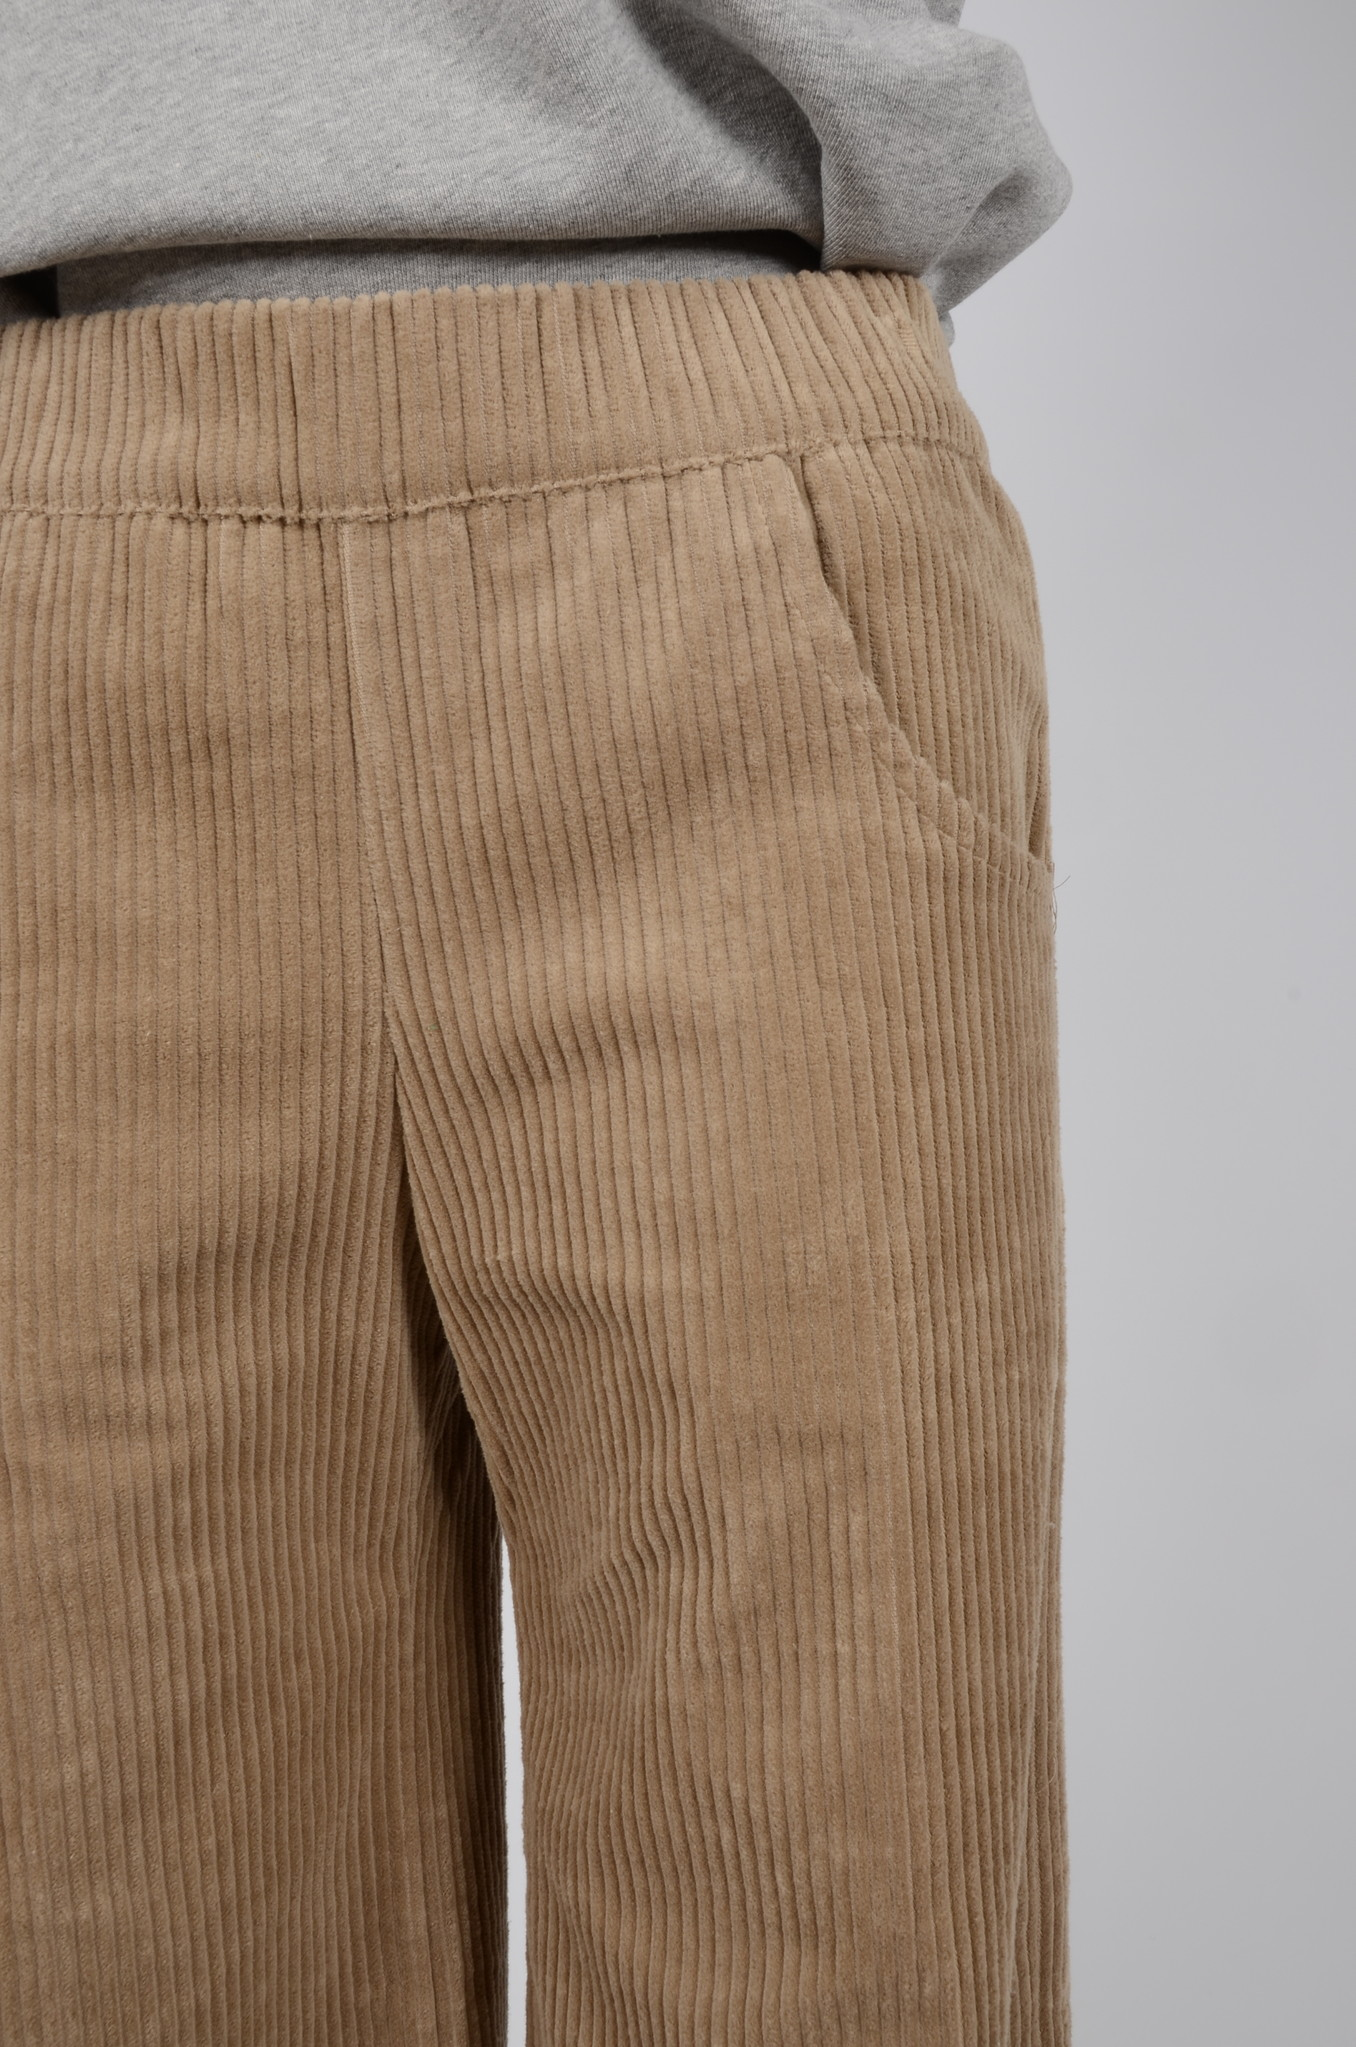 WOODY PANTS CAMEL-4